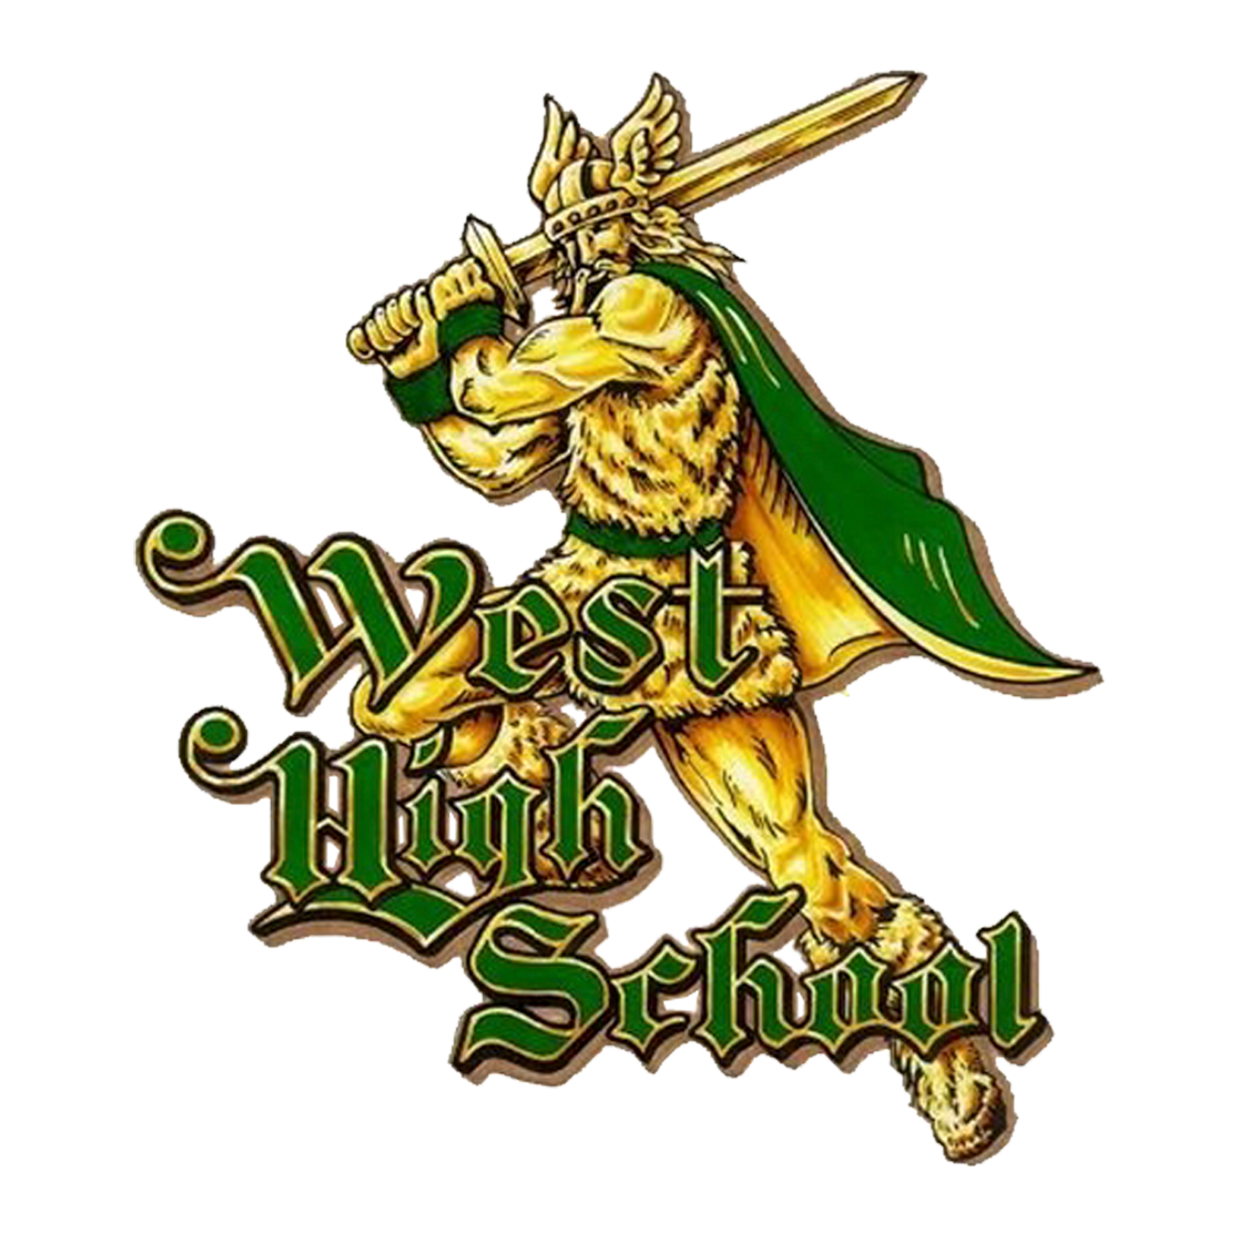 West Vikings